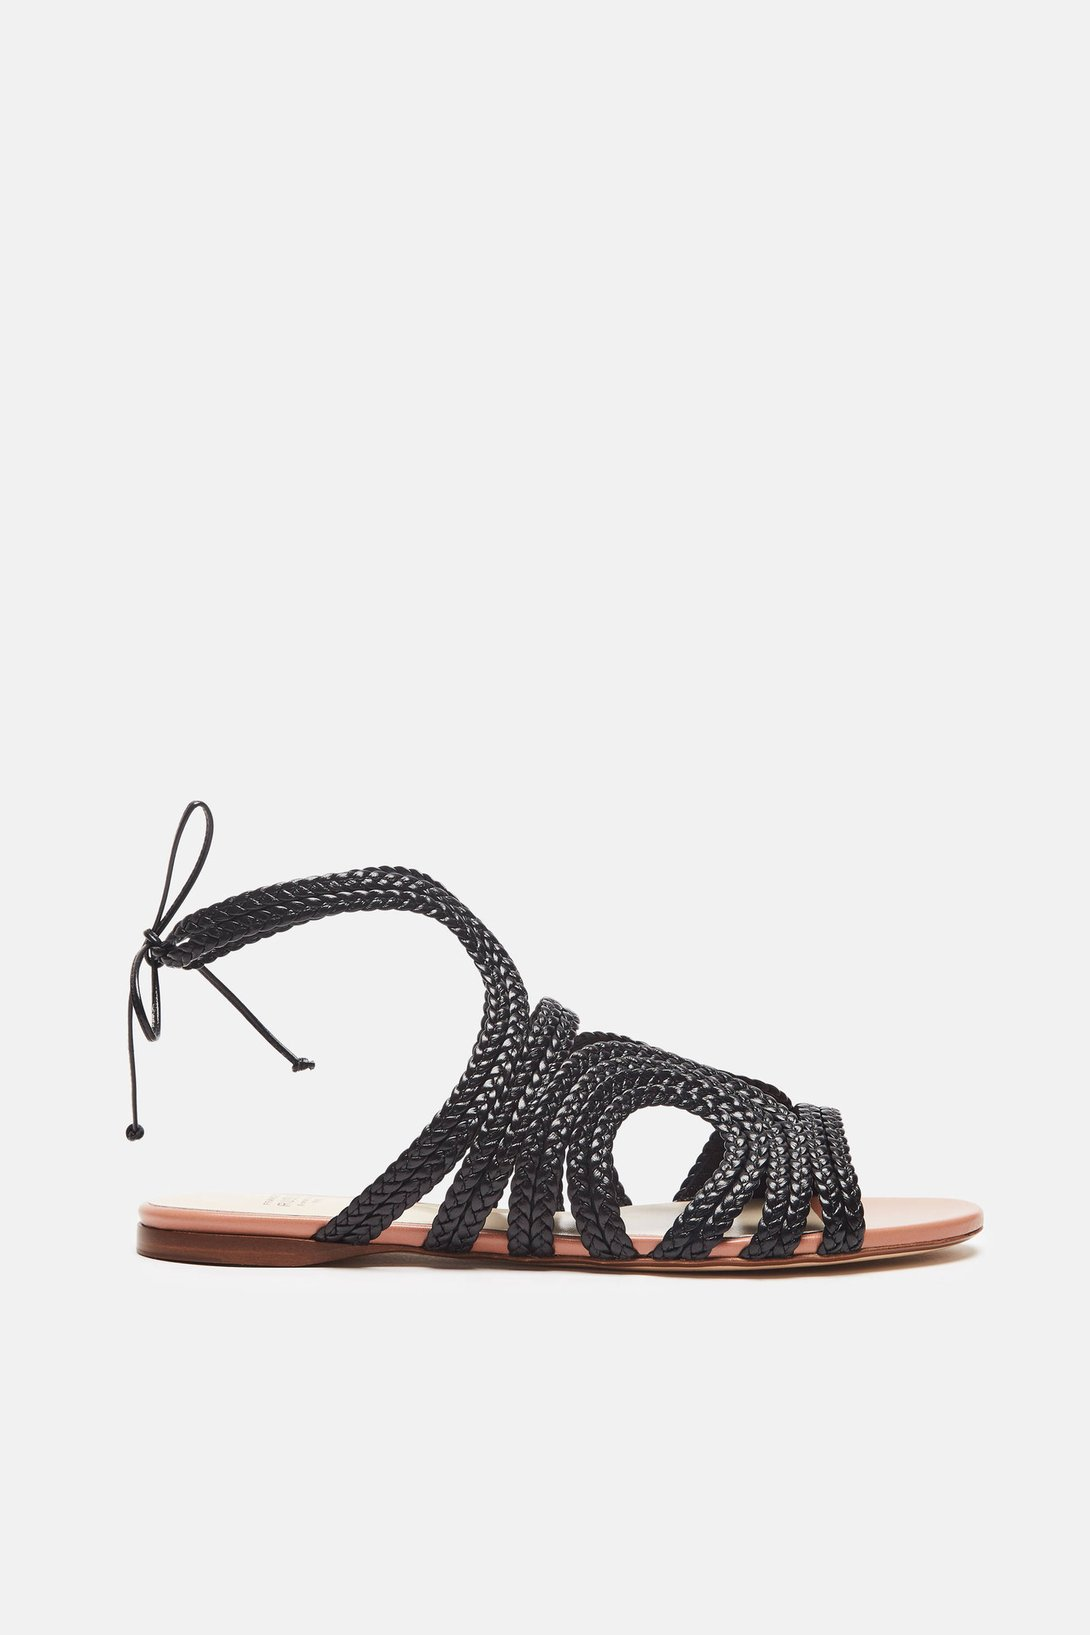 cb7c7fcb739 Shop Francesco Russo Flat Sandal in Black from The Best of NYC Designer  Sample Sale Women s Shoes Sample Sale